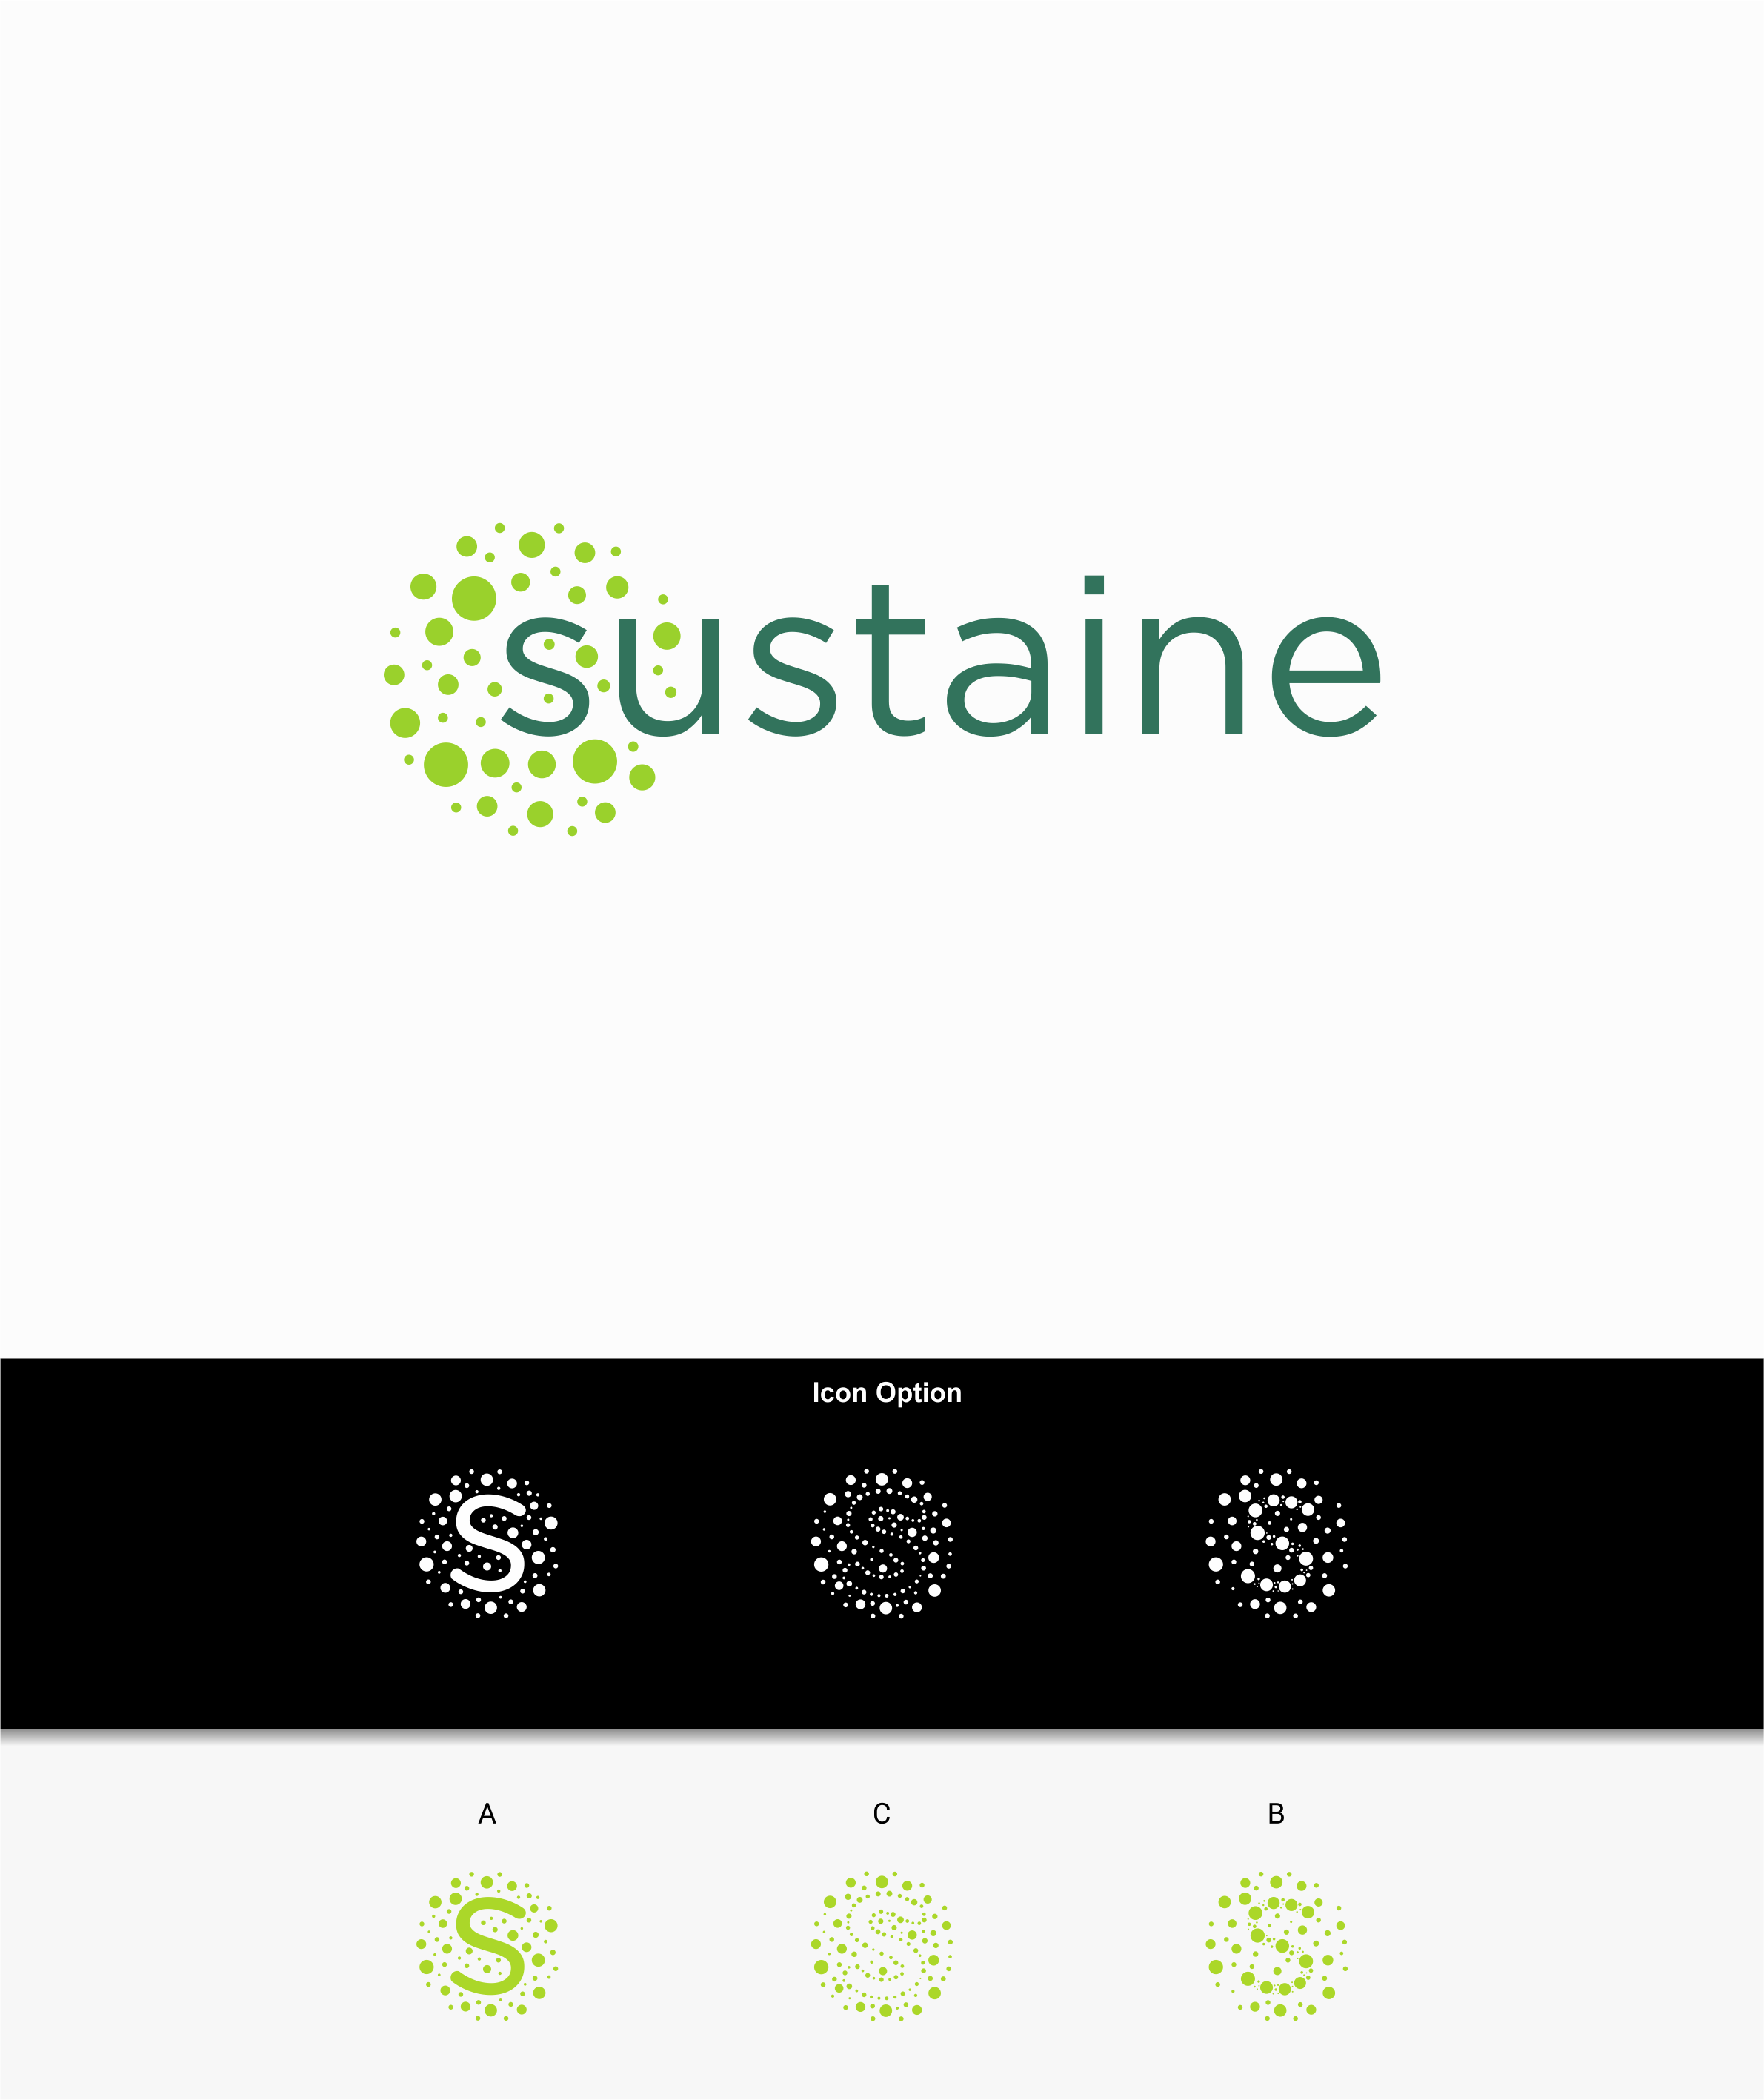 Design a logo for a technology that improves the sustainability of agriculture!